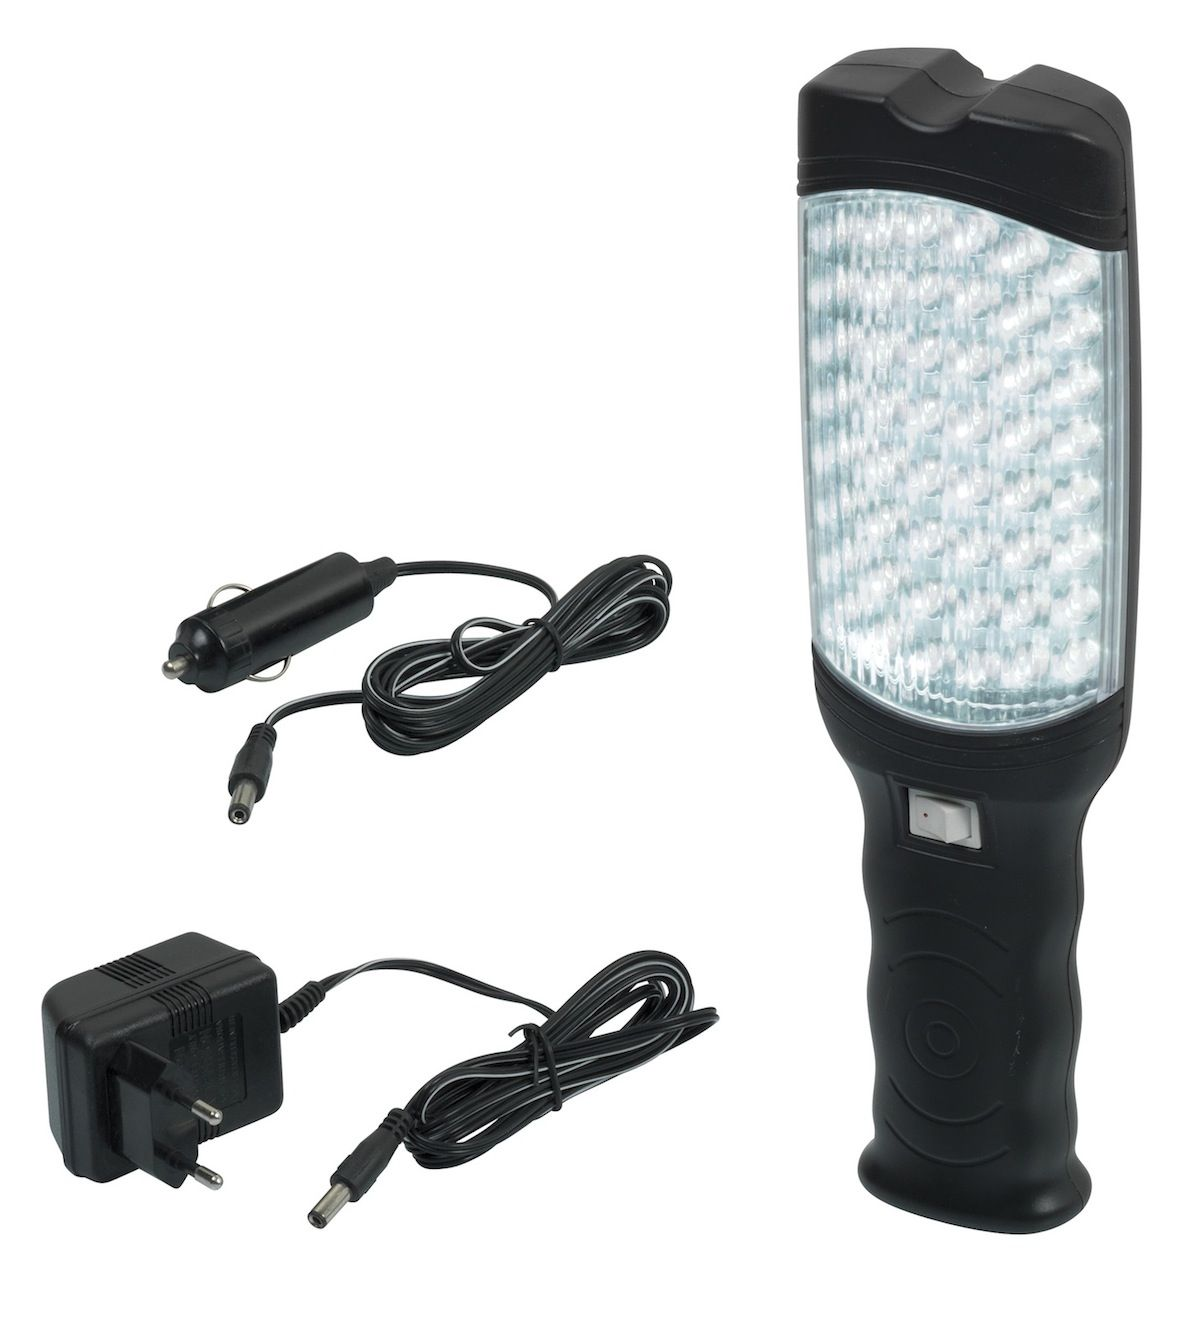 lampe baladeuse 48 leds rechargeable allume cigares ebay. Black Bedroom Furniture Sets. Home Design Ideas